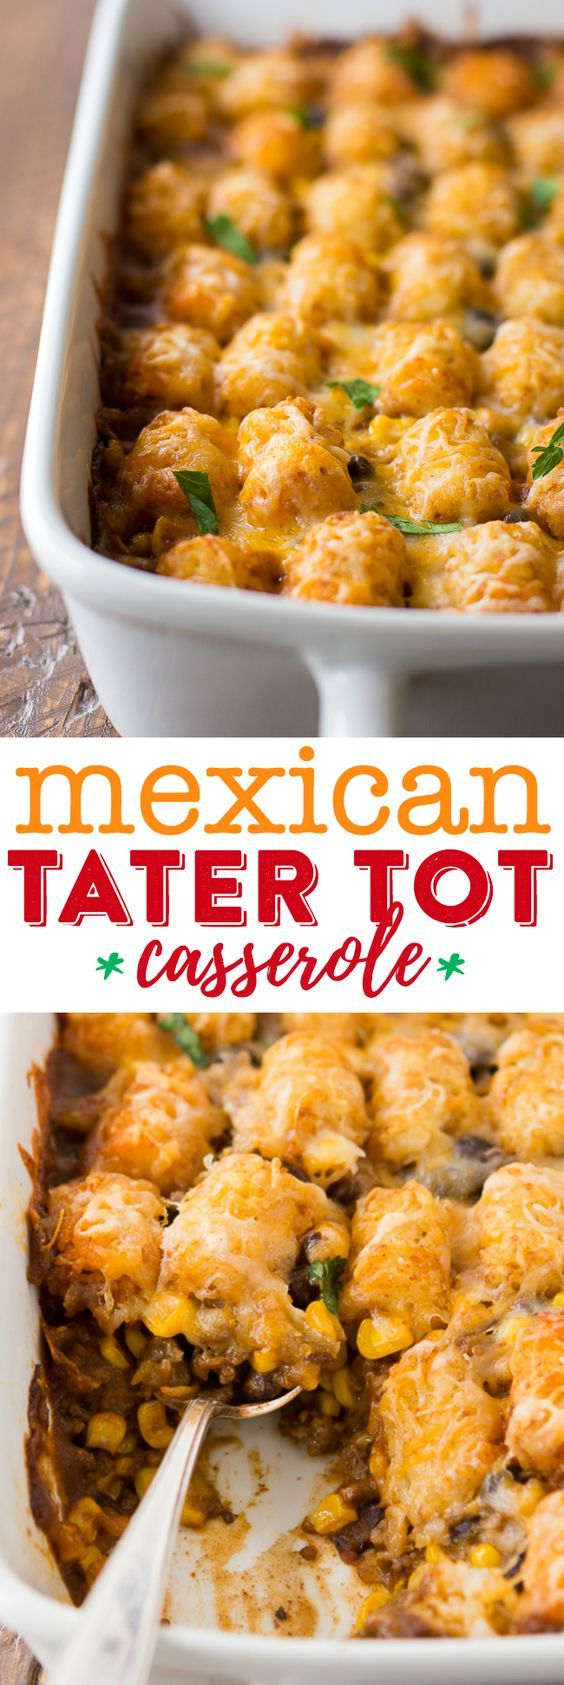 Mexican Tater Tot Casserole Recipe #easyrecipes